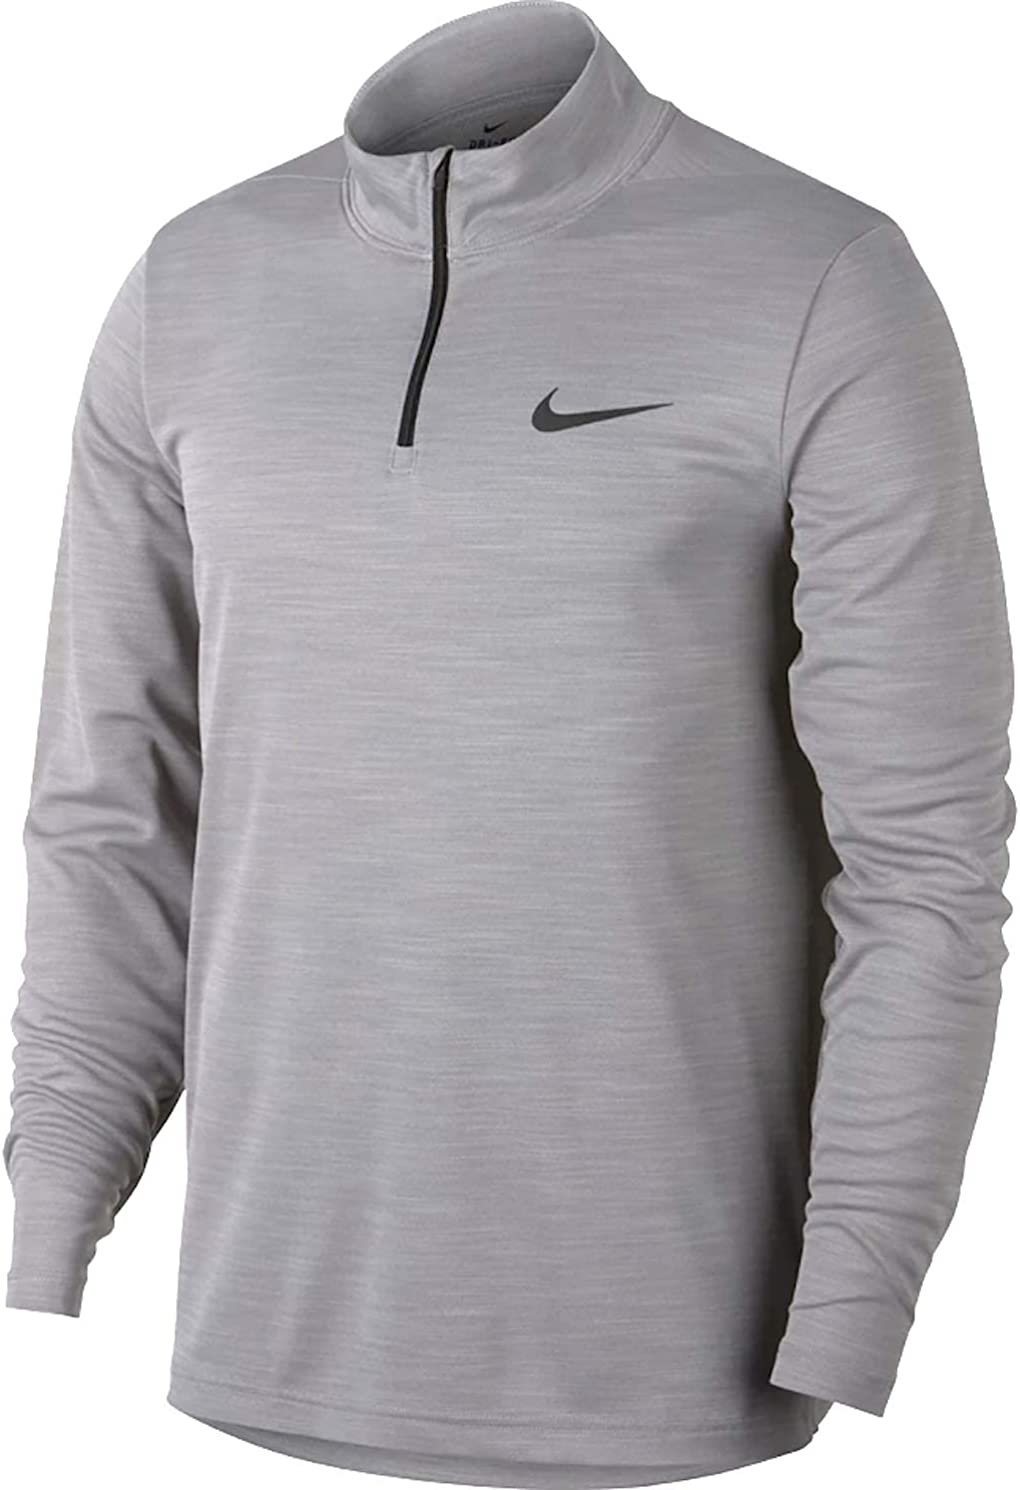 Nike Men's Superset 1 4 Long Sleeve Training Top Zip Cheap mail order shopping Product